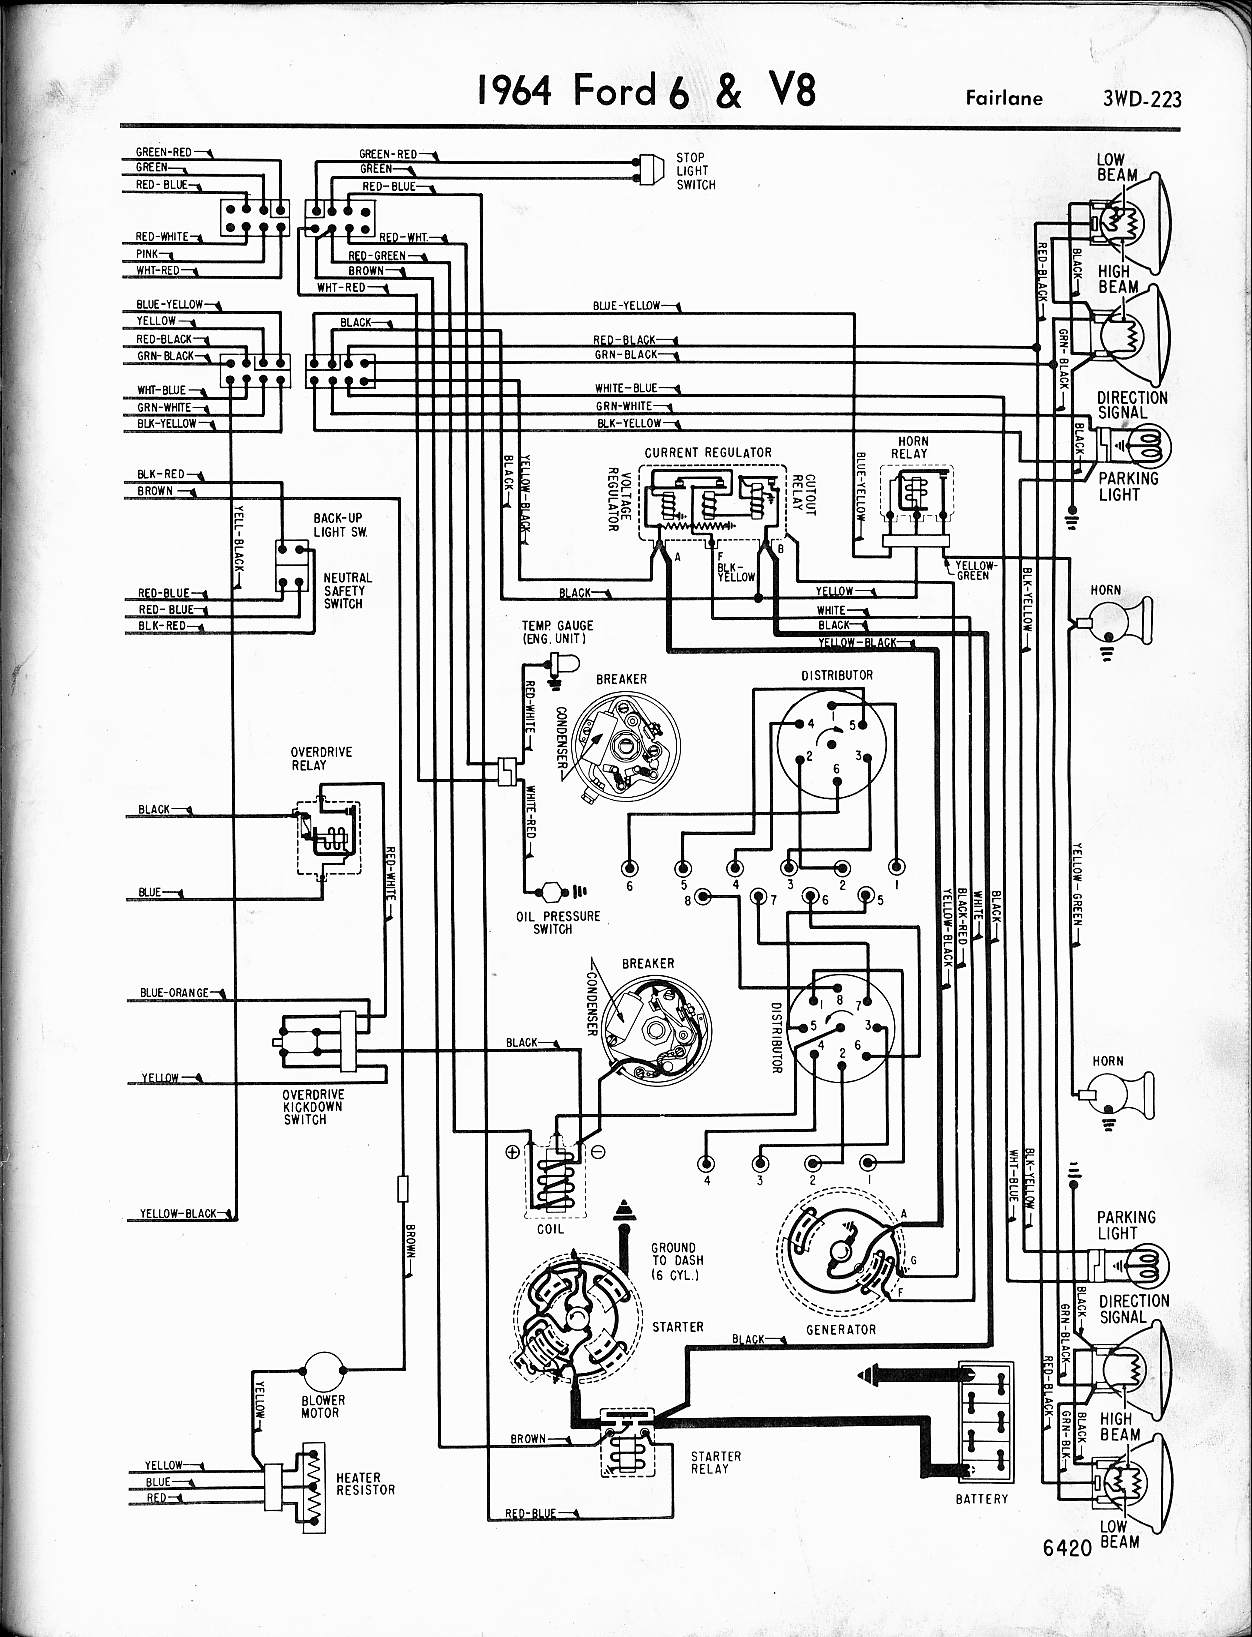 MWire5765 223 57 65 ford wiring diagrams 1965 ford f100 dash wiring diagram at gsmx.co